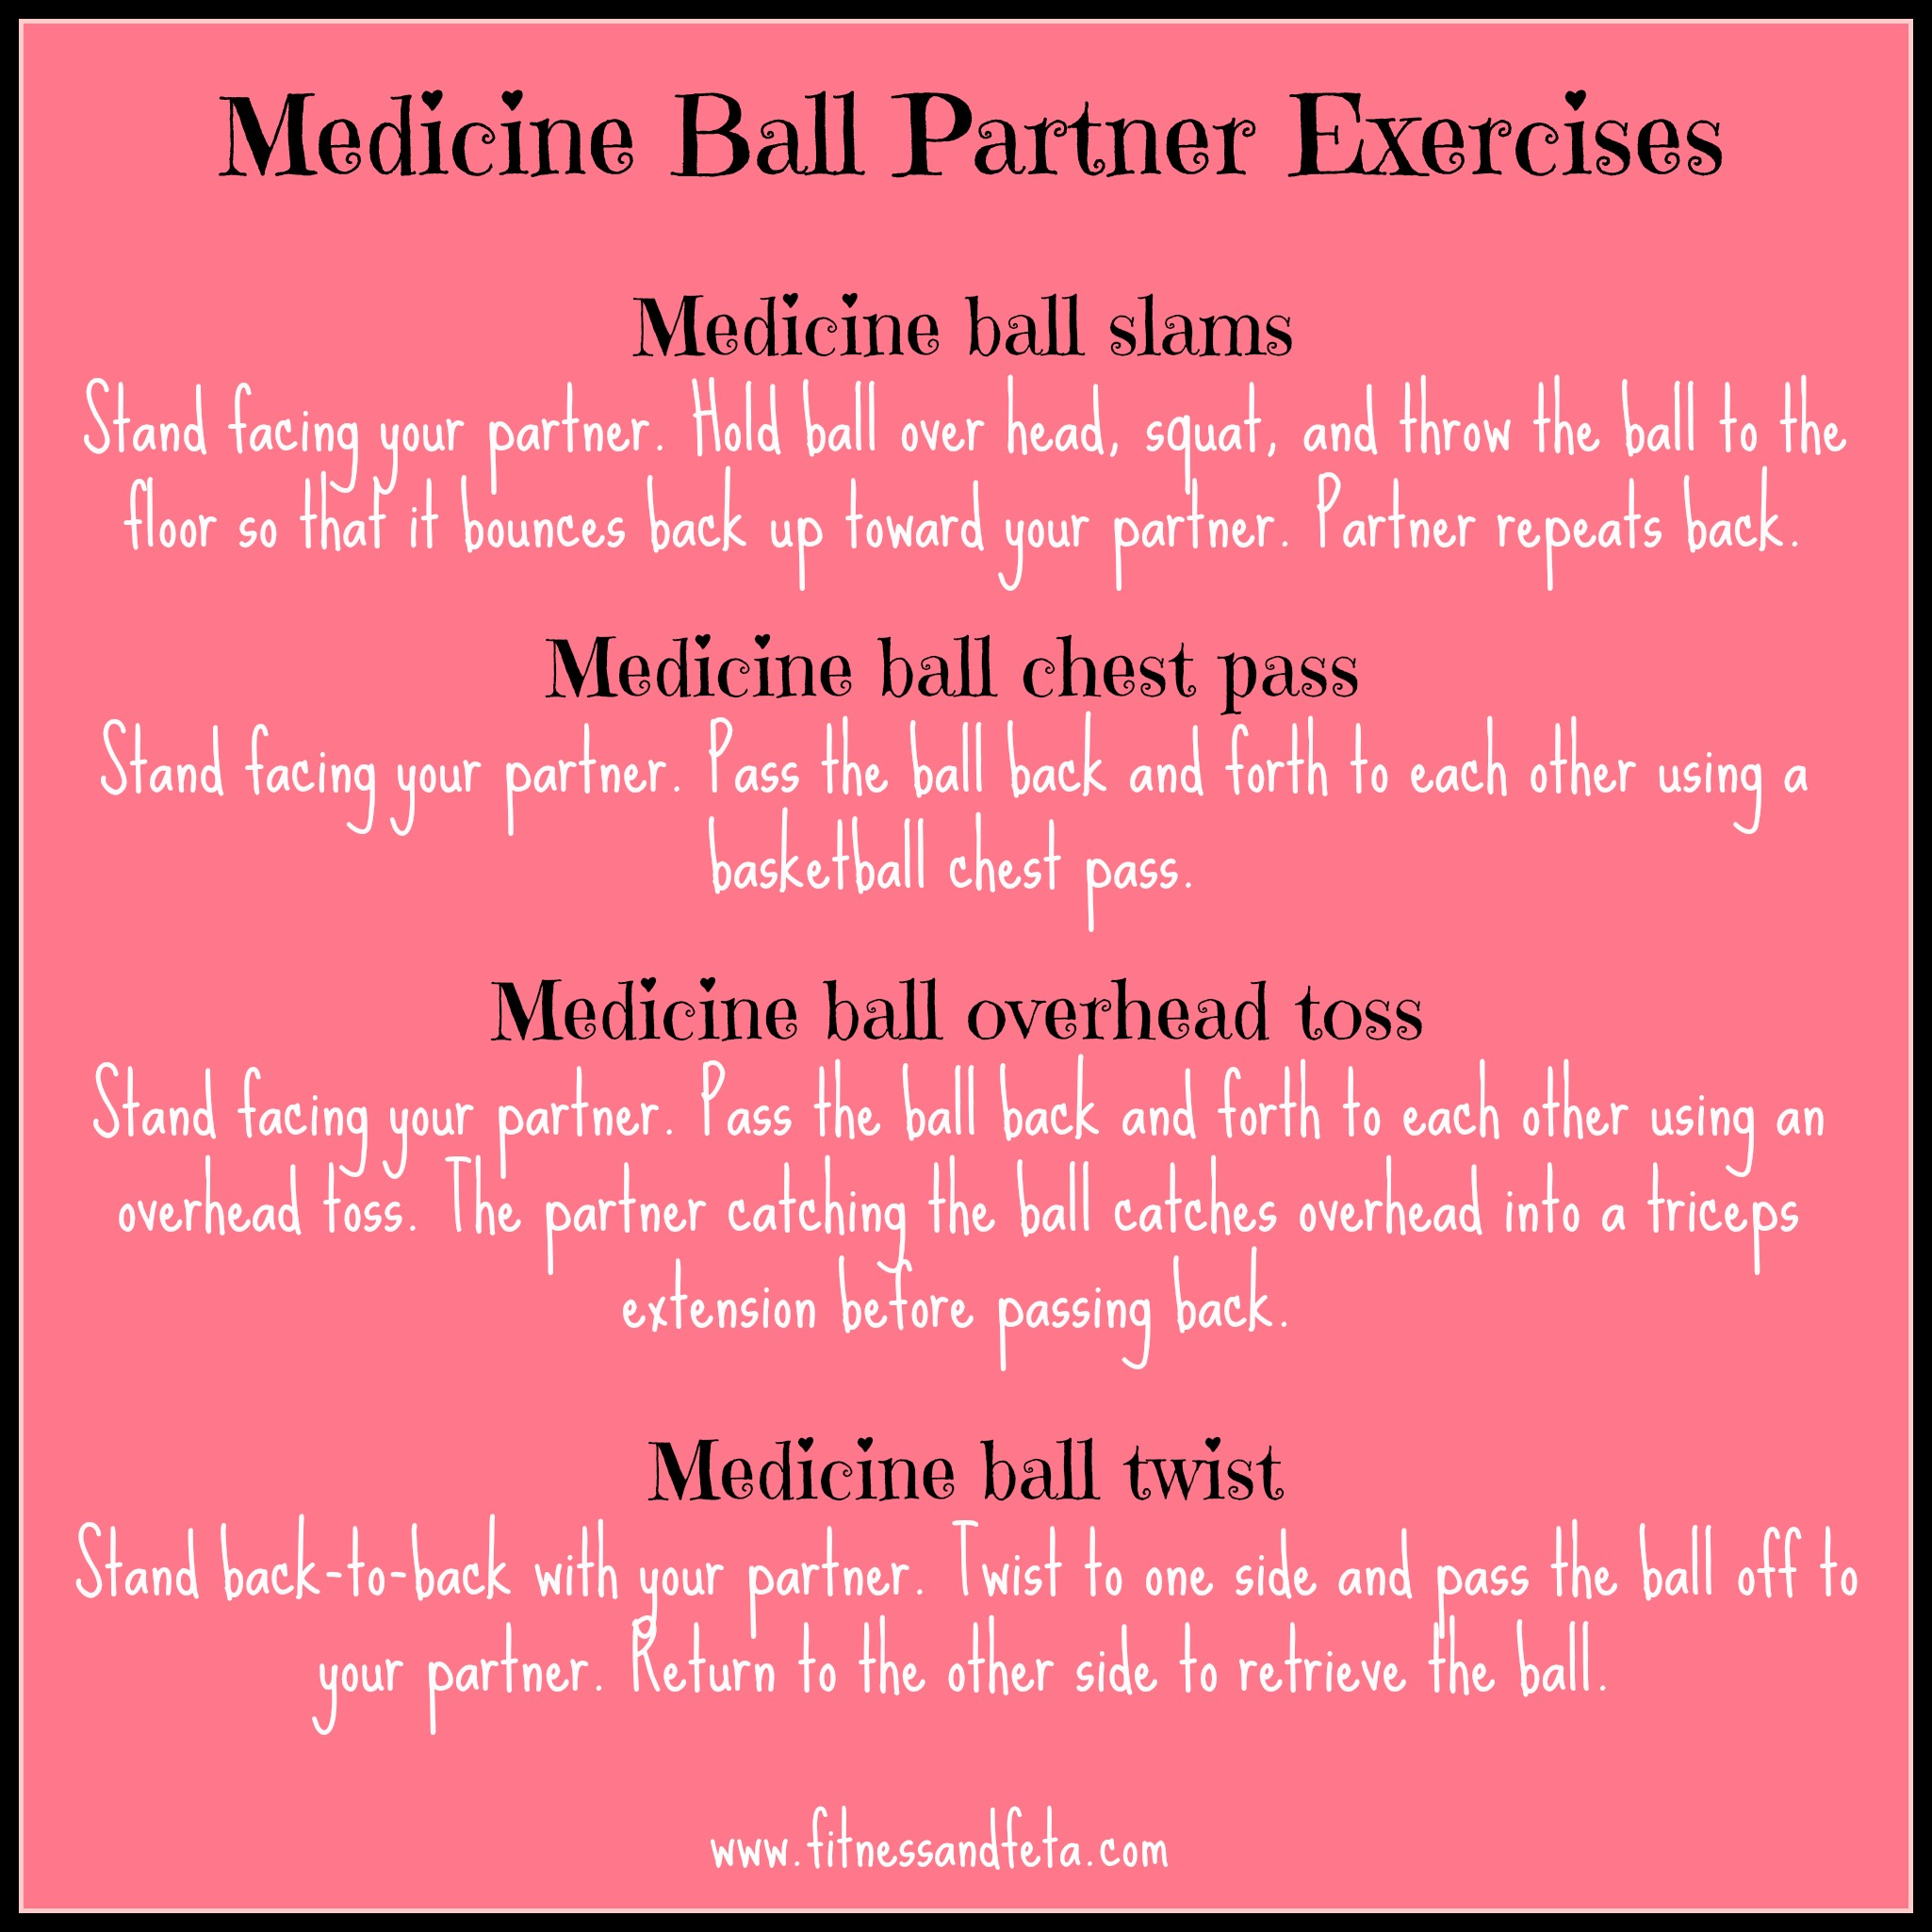 Medicine Ball Partner Exercises